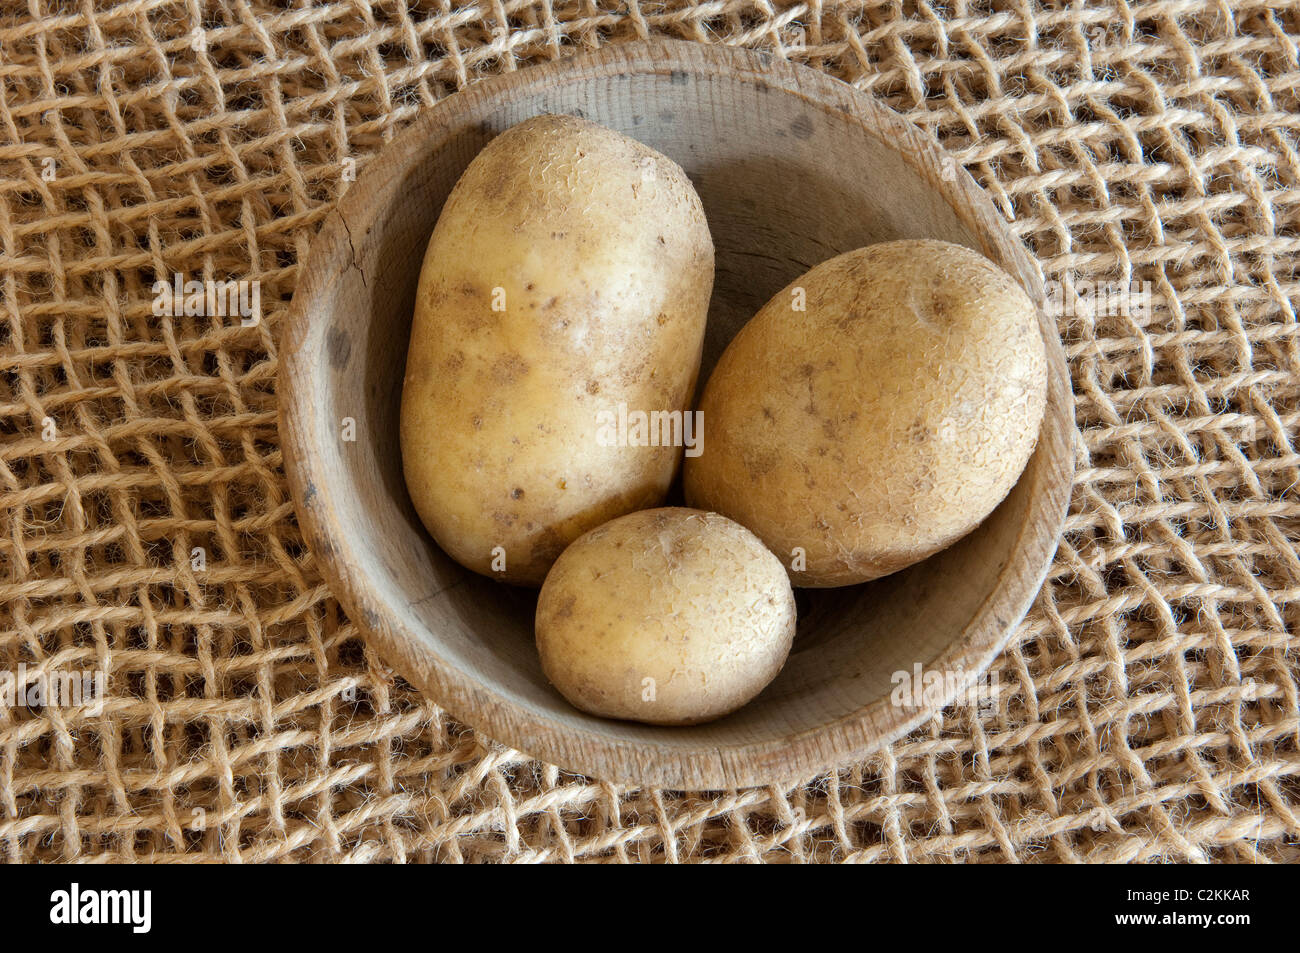 Up To Date Potato (Solanum tuberosum Up To Date). Potatoes in a wooden bowl. - Stock Image